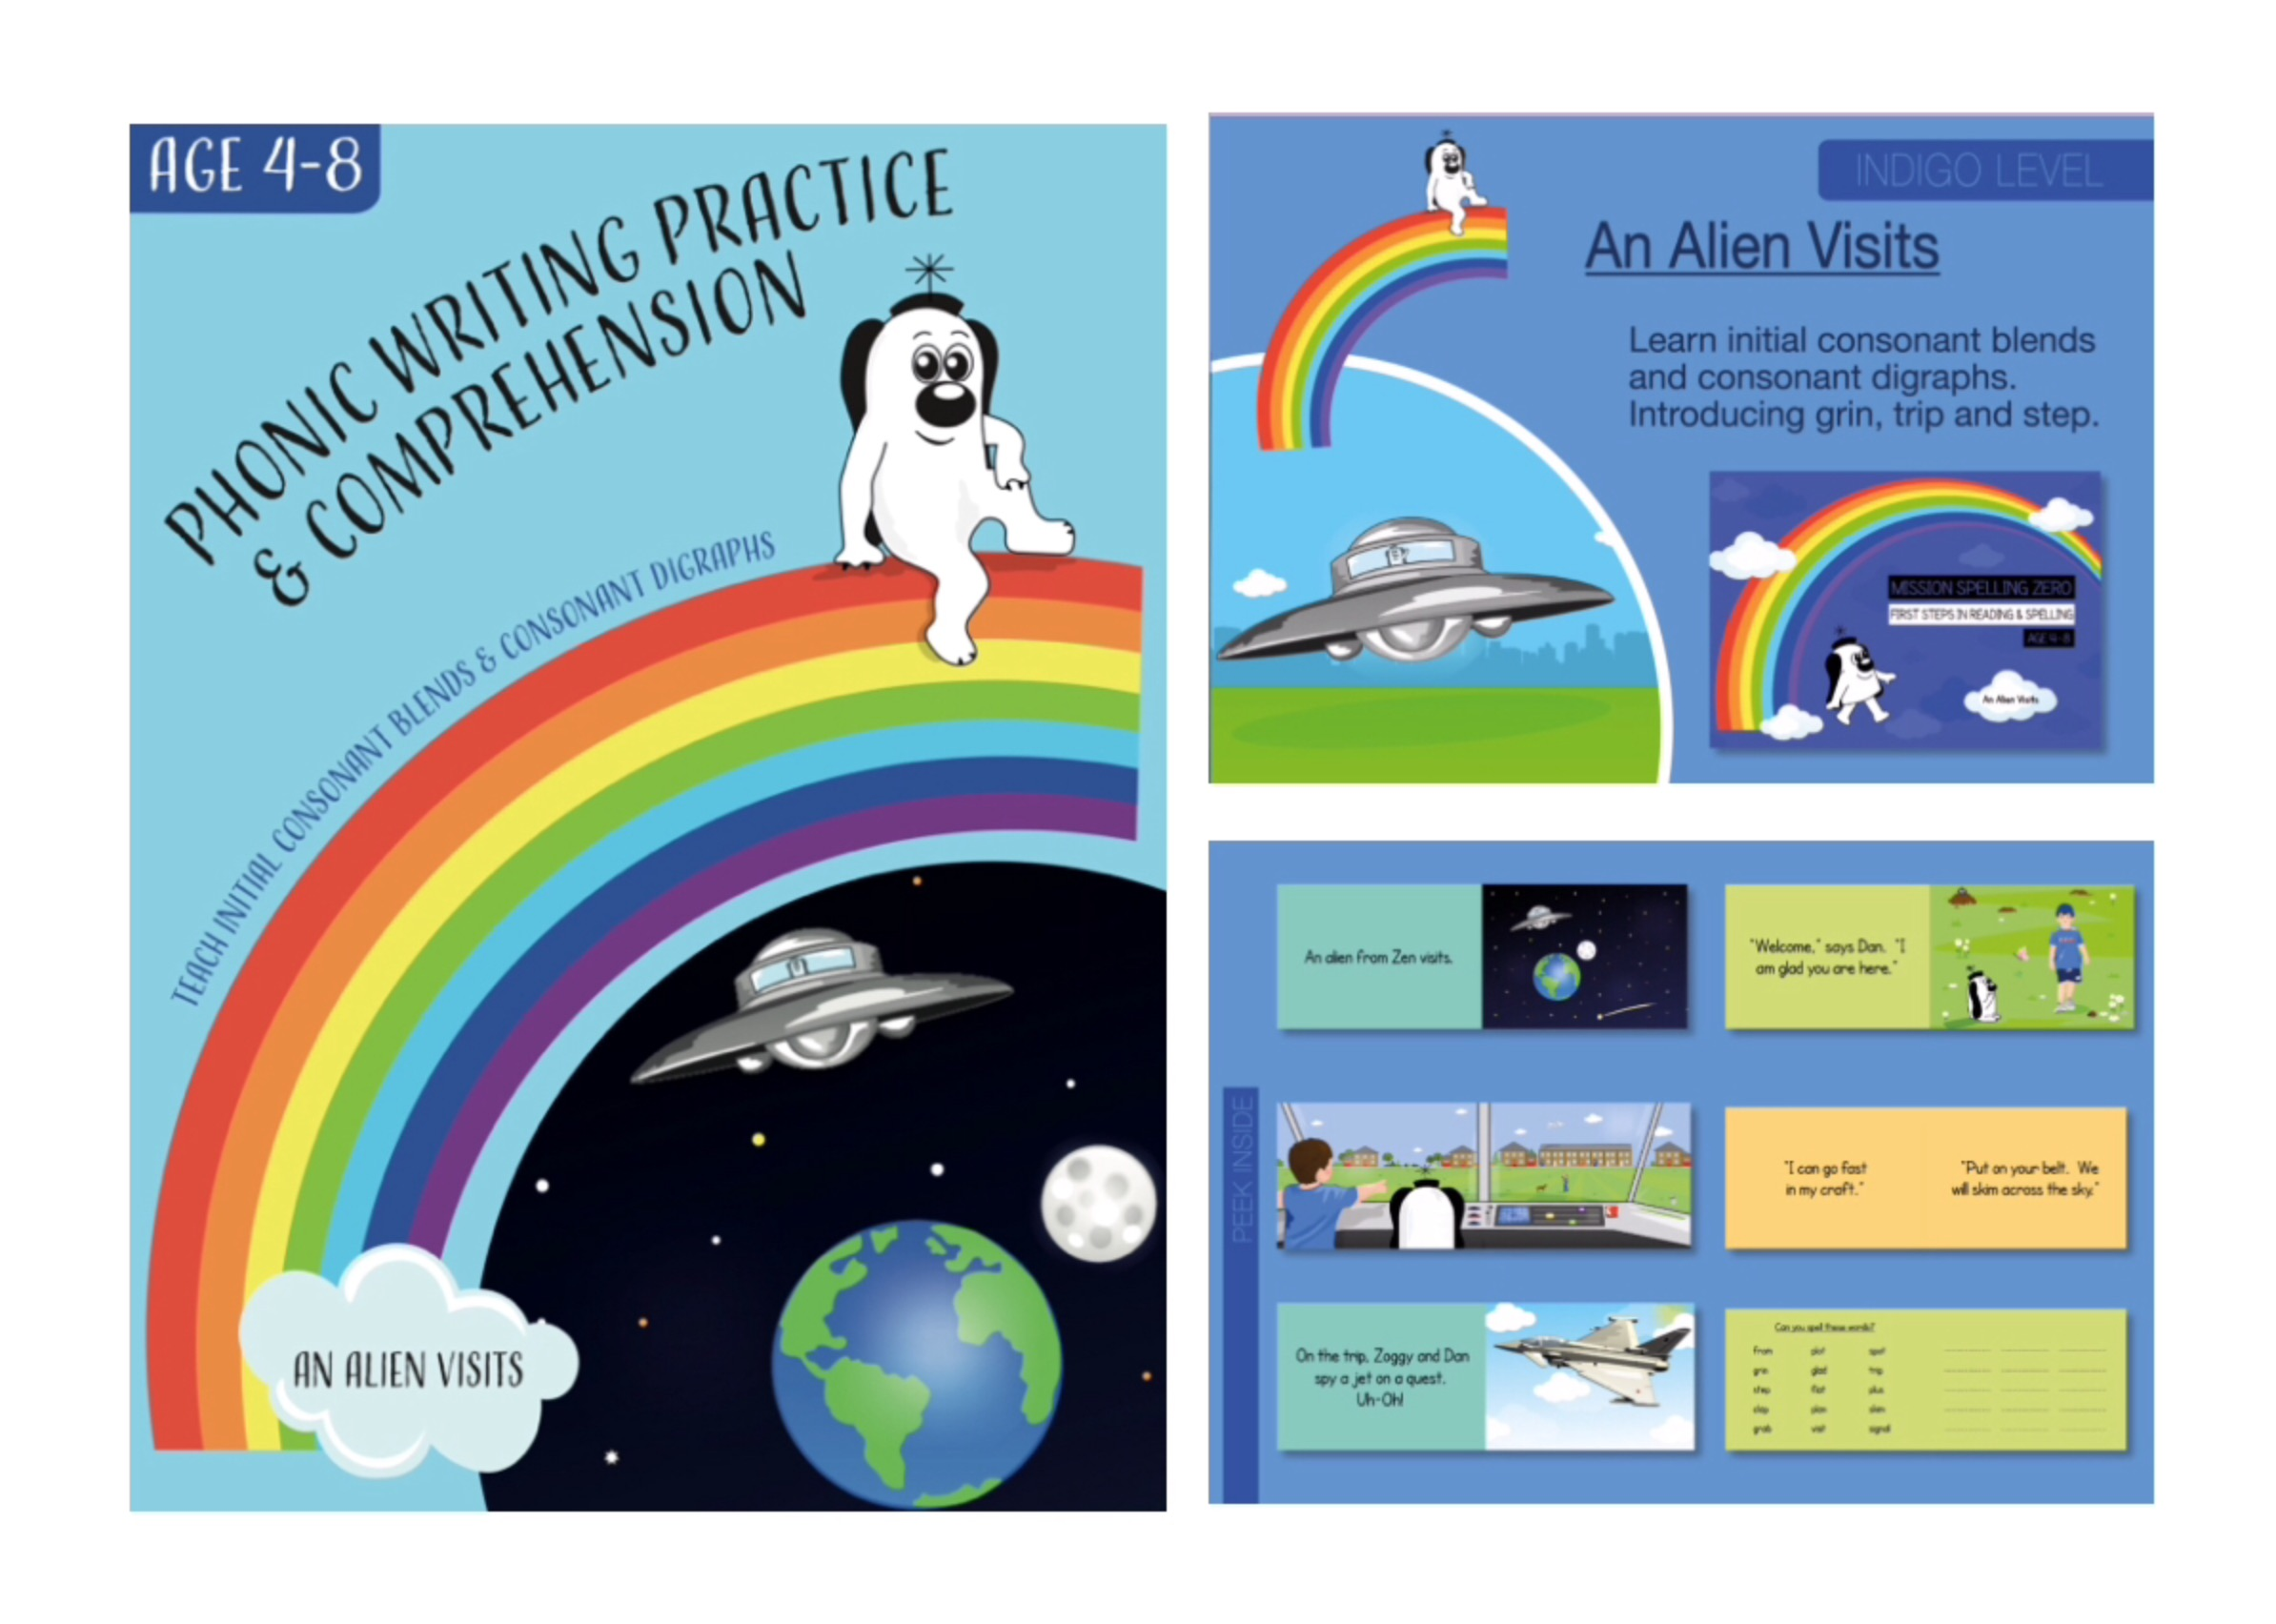 Initial Consonant Blends & Consonant Digraphs (An Alien Visits)